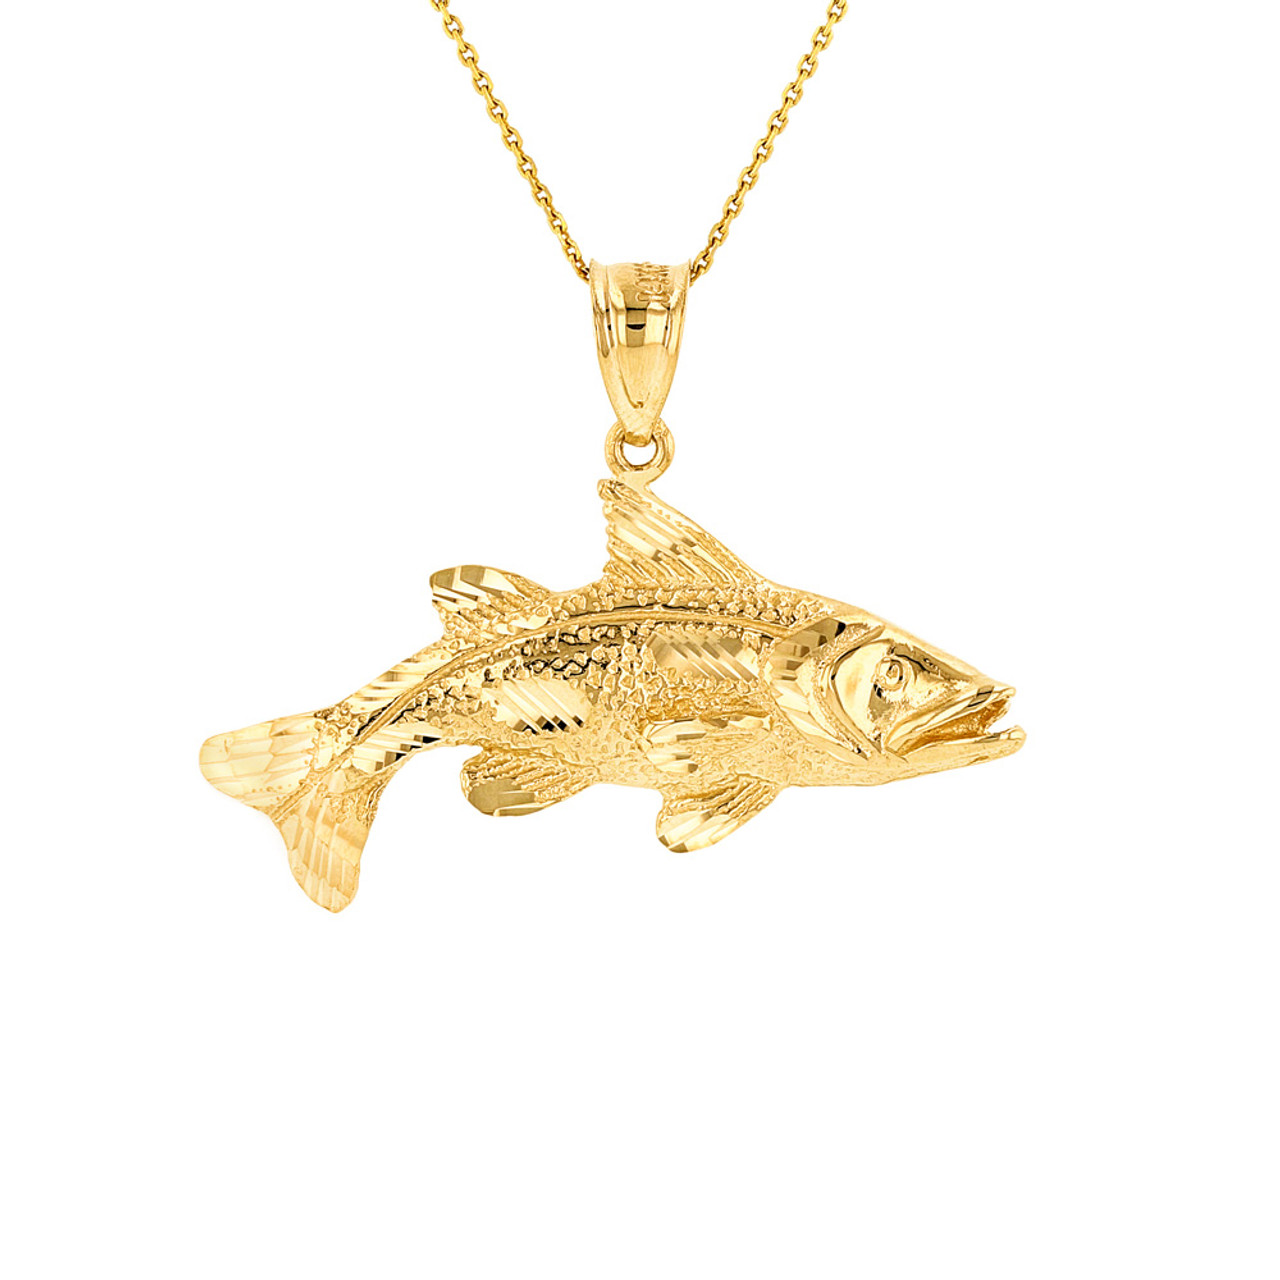 Solid yellow gold diamond cut largemouth bass fish pendant for Solid gold fish